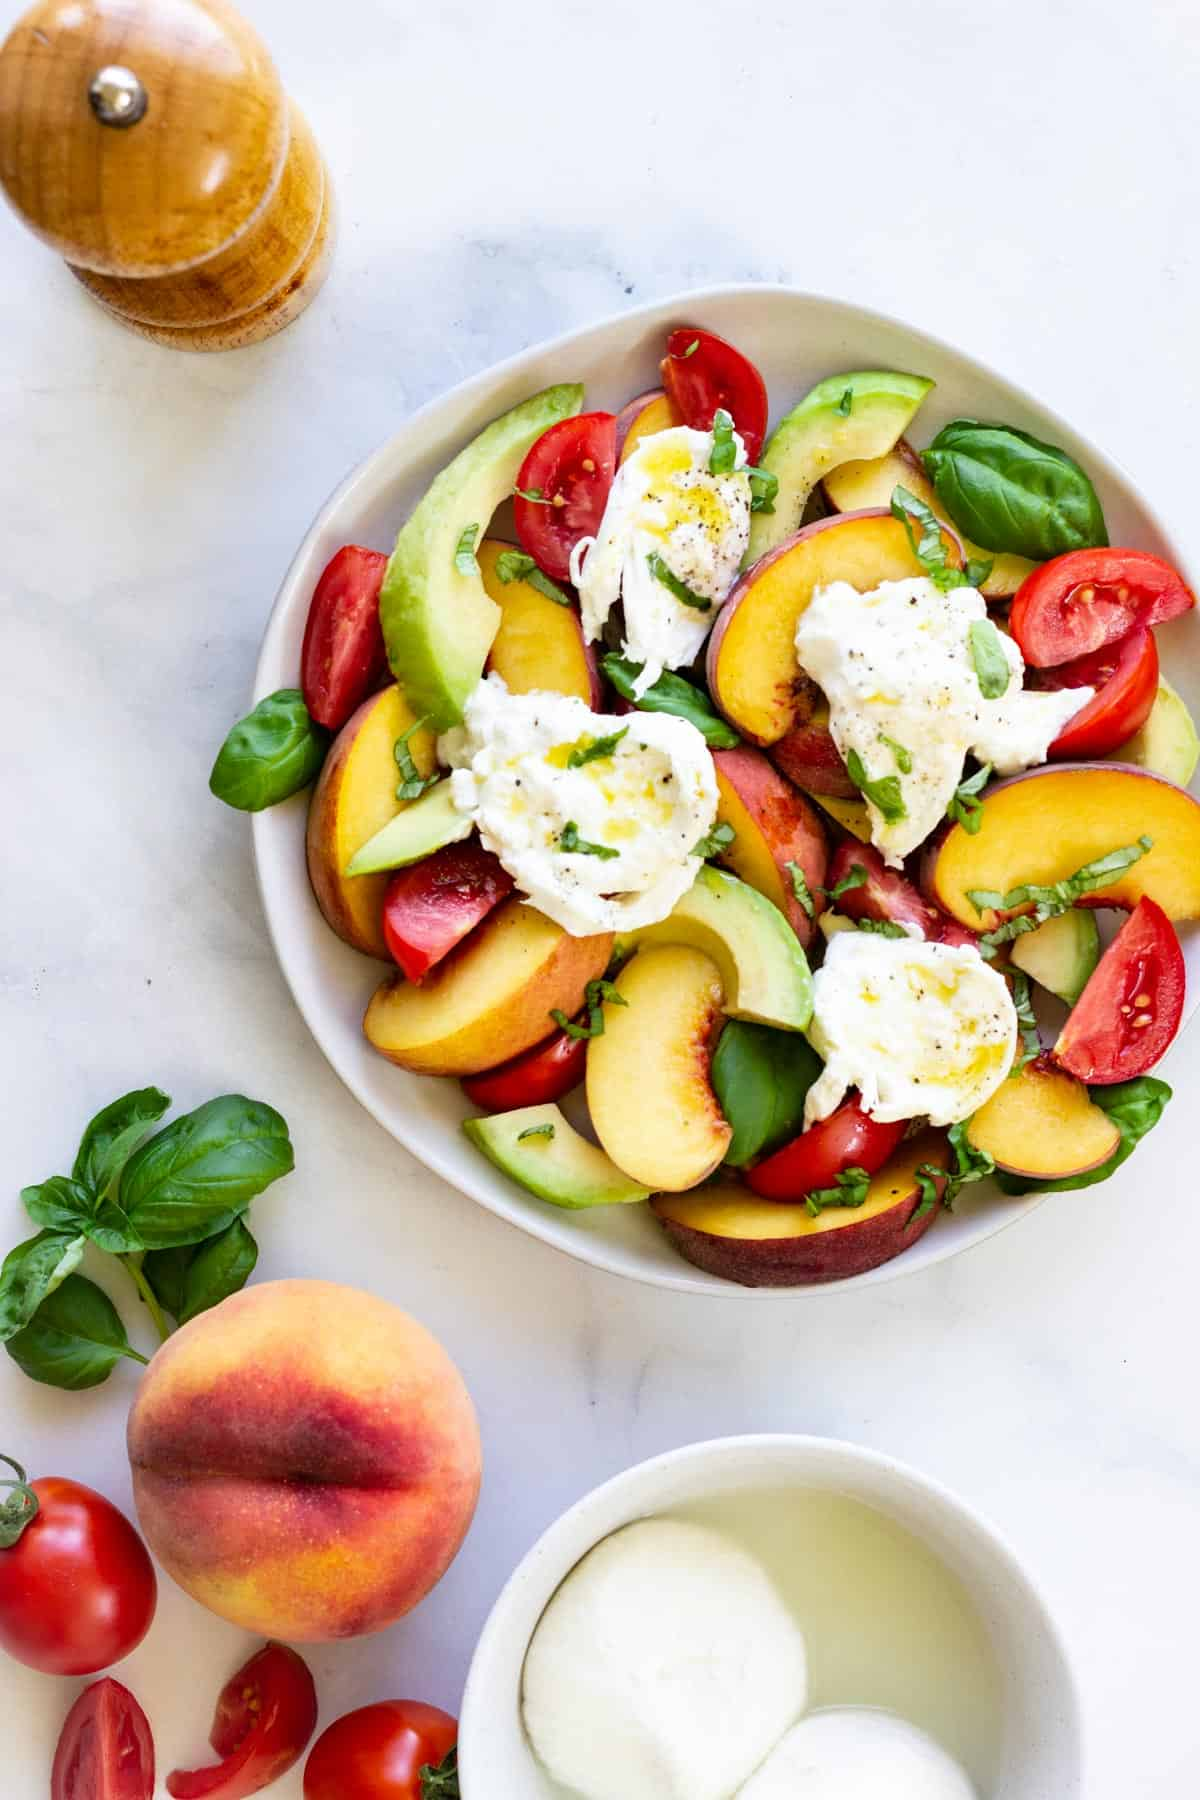 A peach caprese salad sits on a marble countertop next to a small bowl of burrata, a pepper grinder, some fresh basil leaves, and a peach.